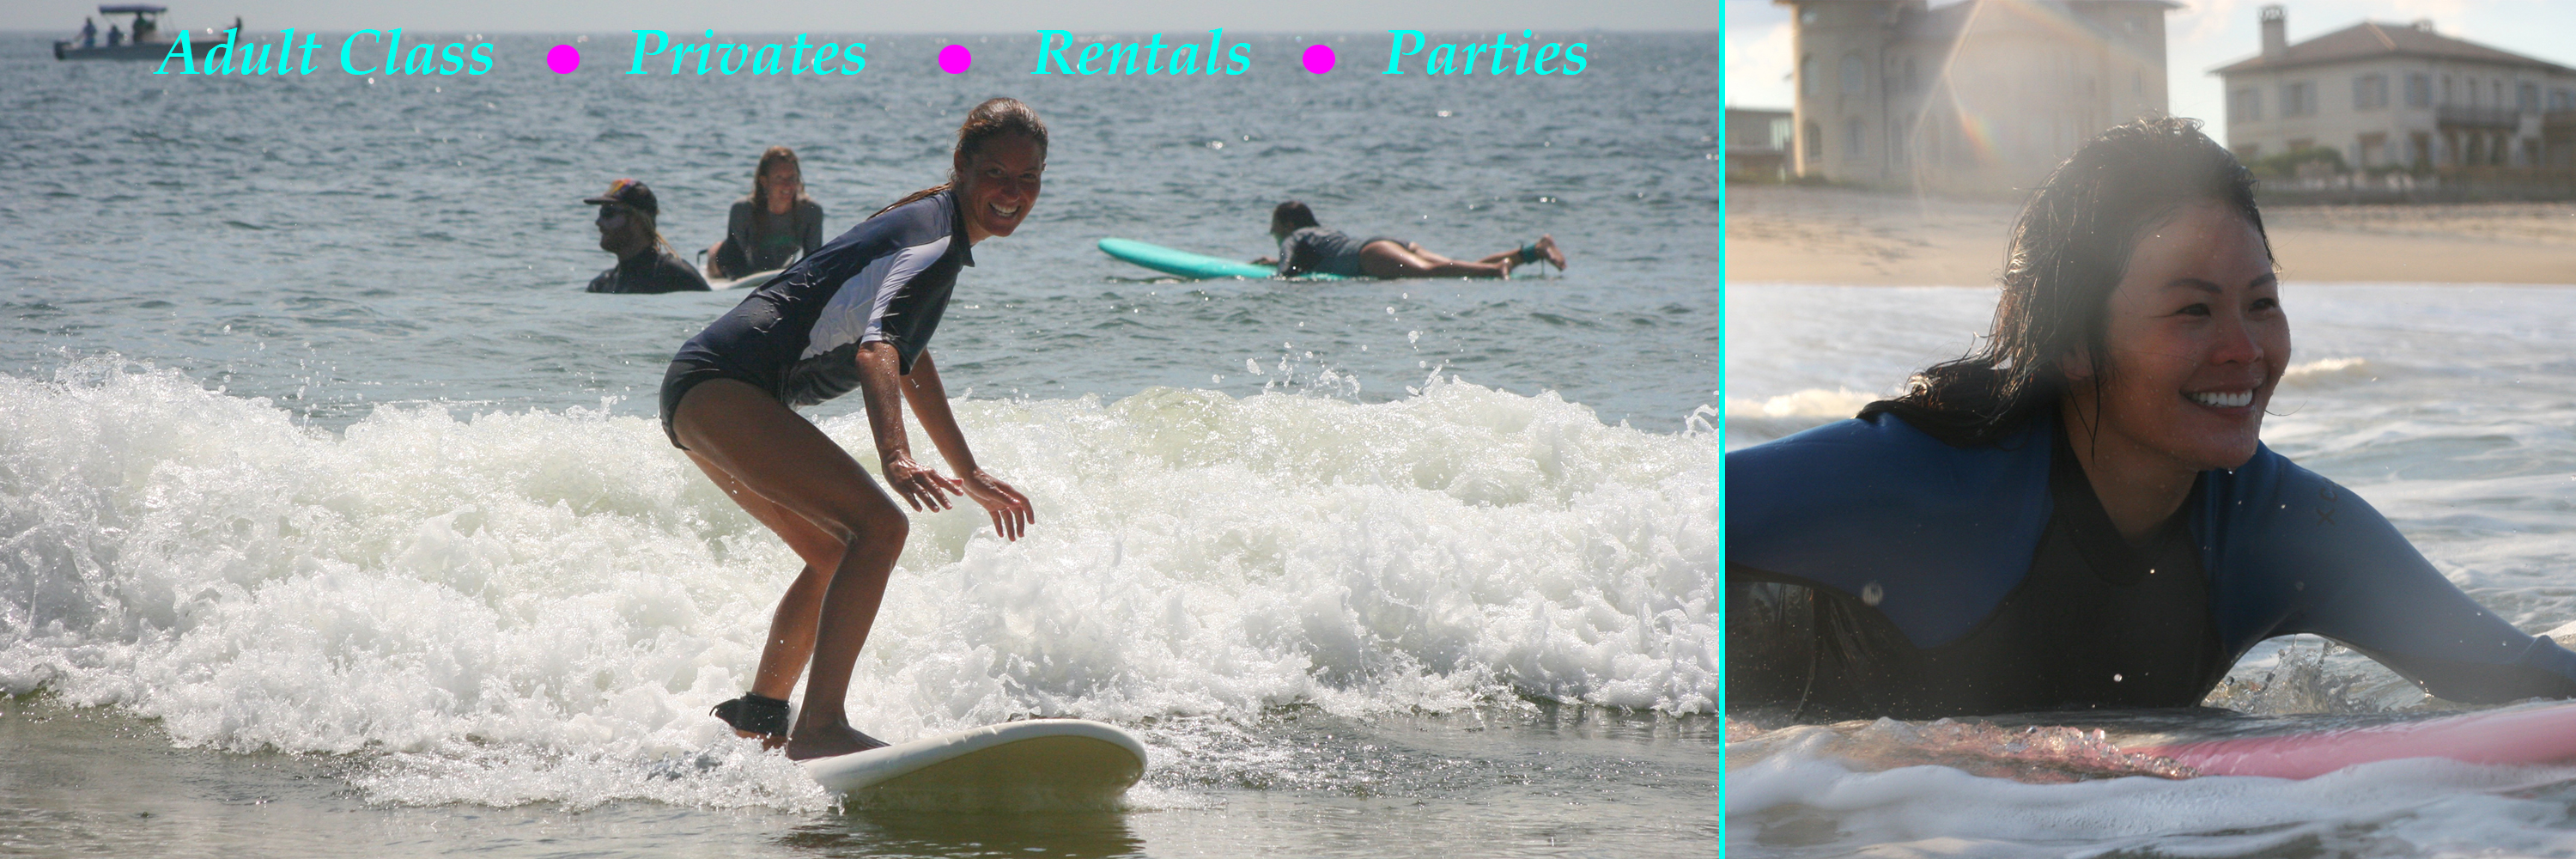 Adult Surf Class, Rentals, Surf B Day Parties